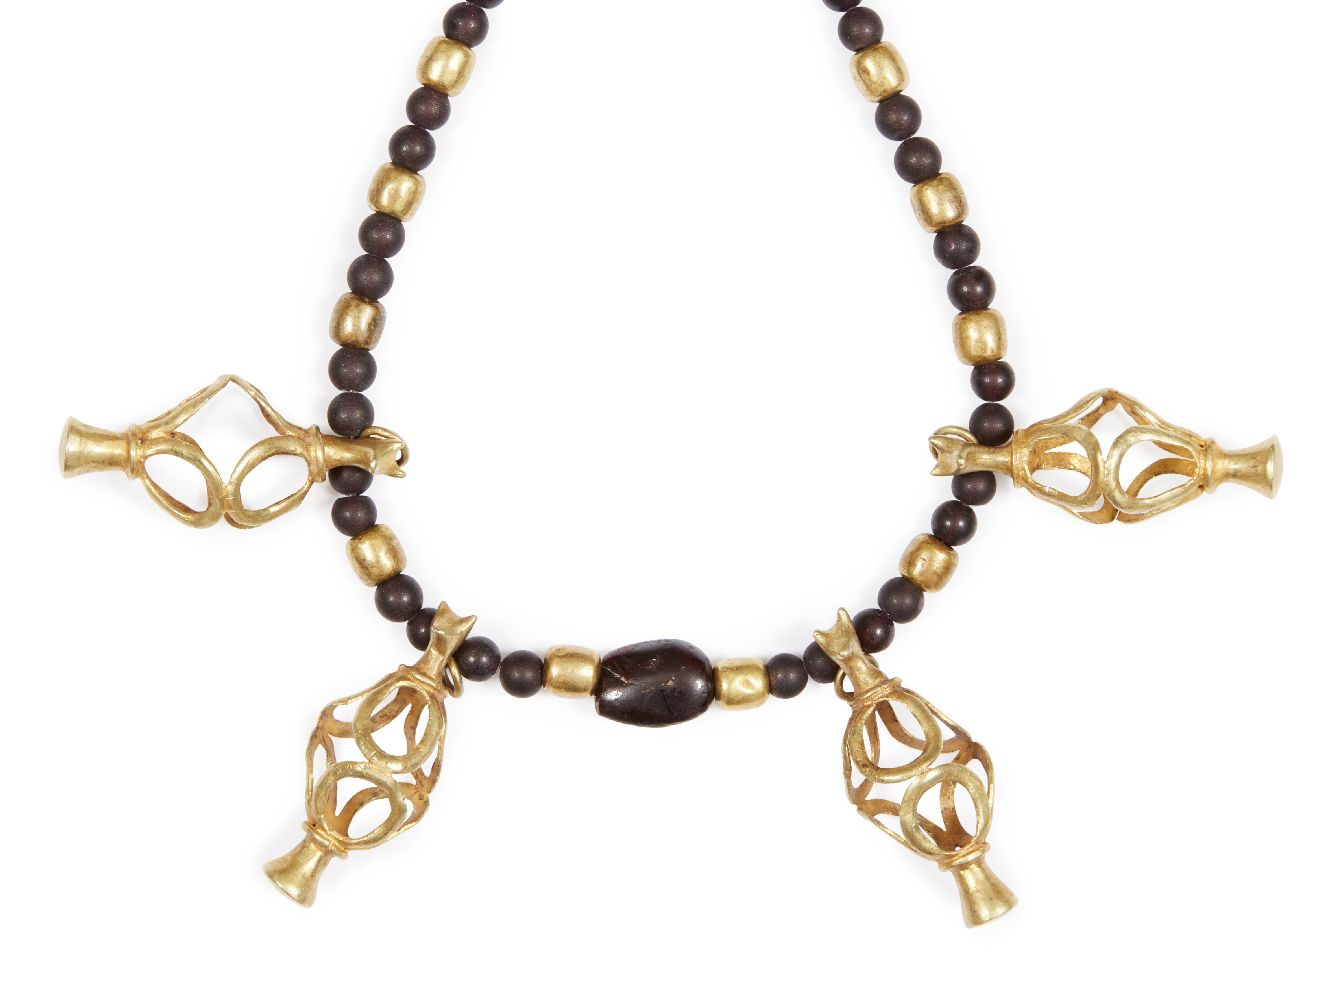 Lot 78 - A composite ancient and modern glass, garnet and gold necklace with openwork vase elements, the